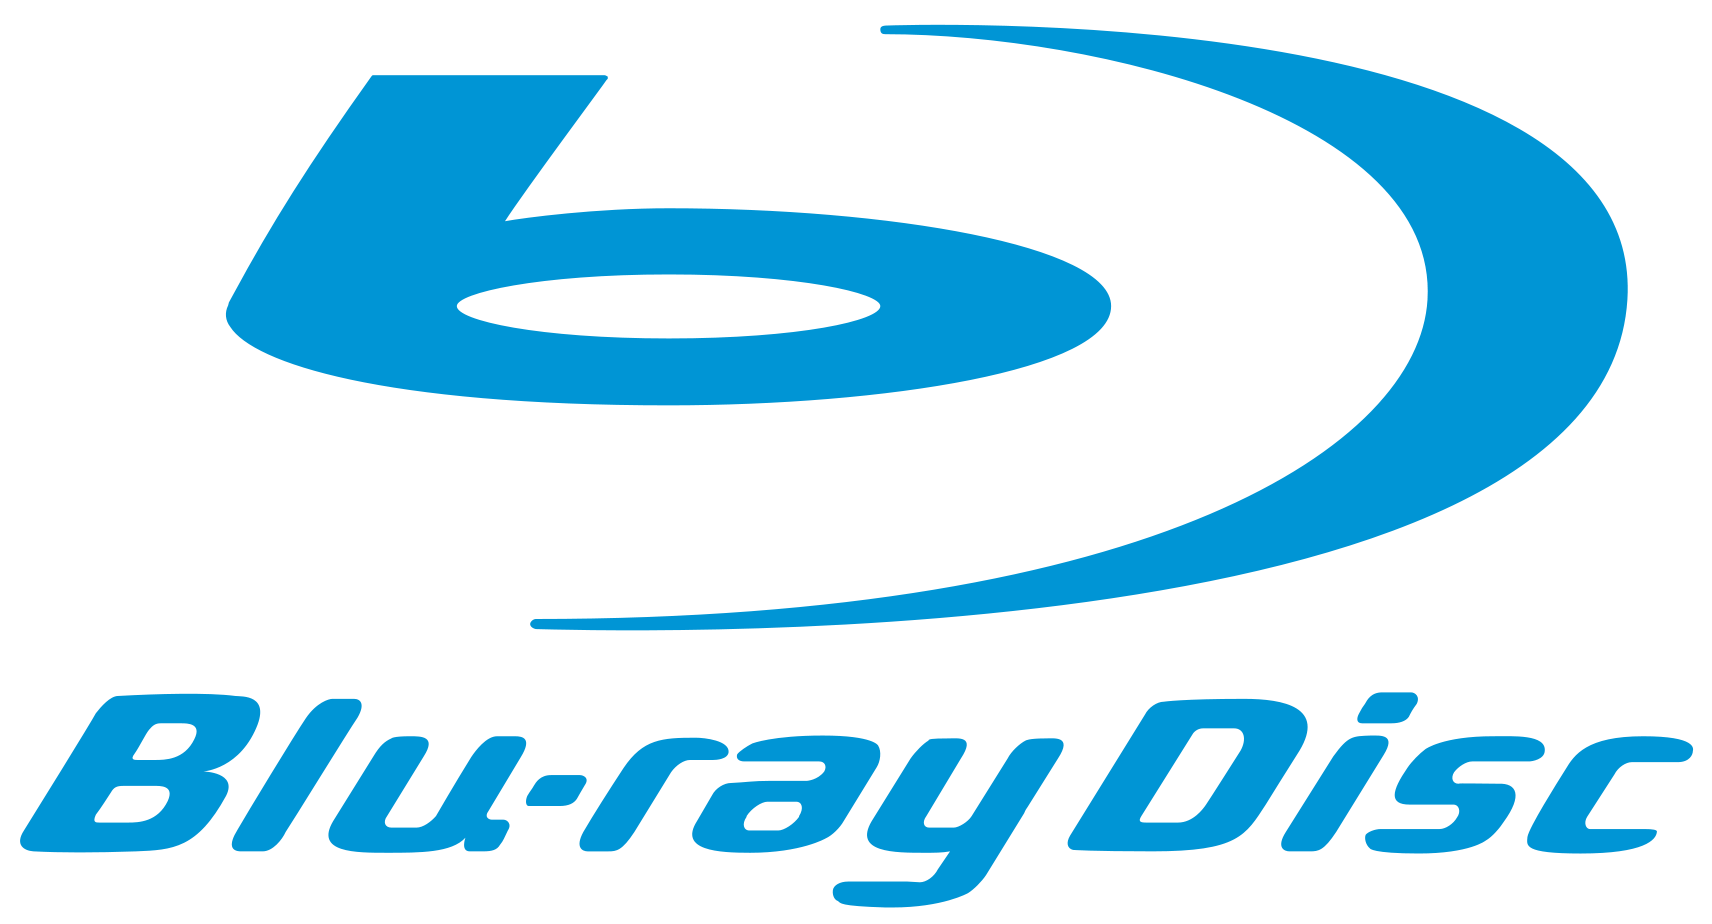 Brilliant Blu-ray Logo 1712 x 924 · 88 kB · png